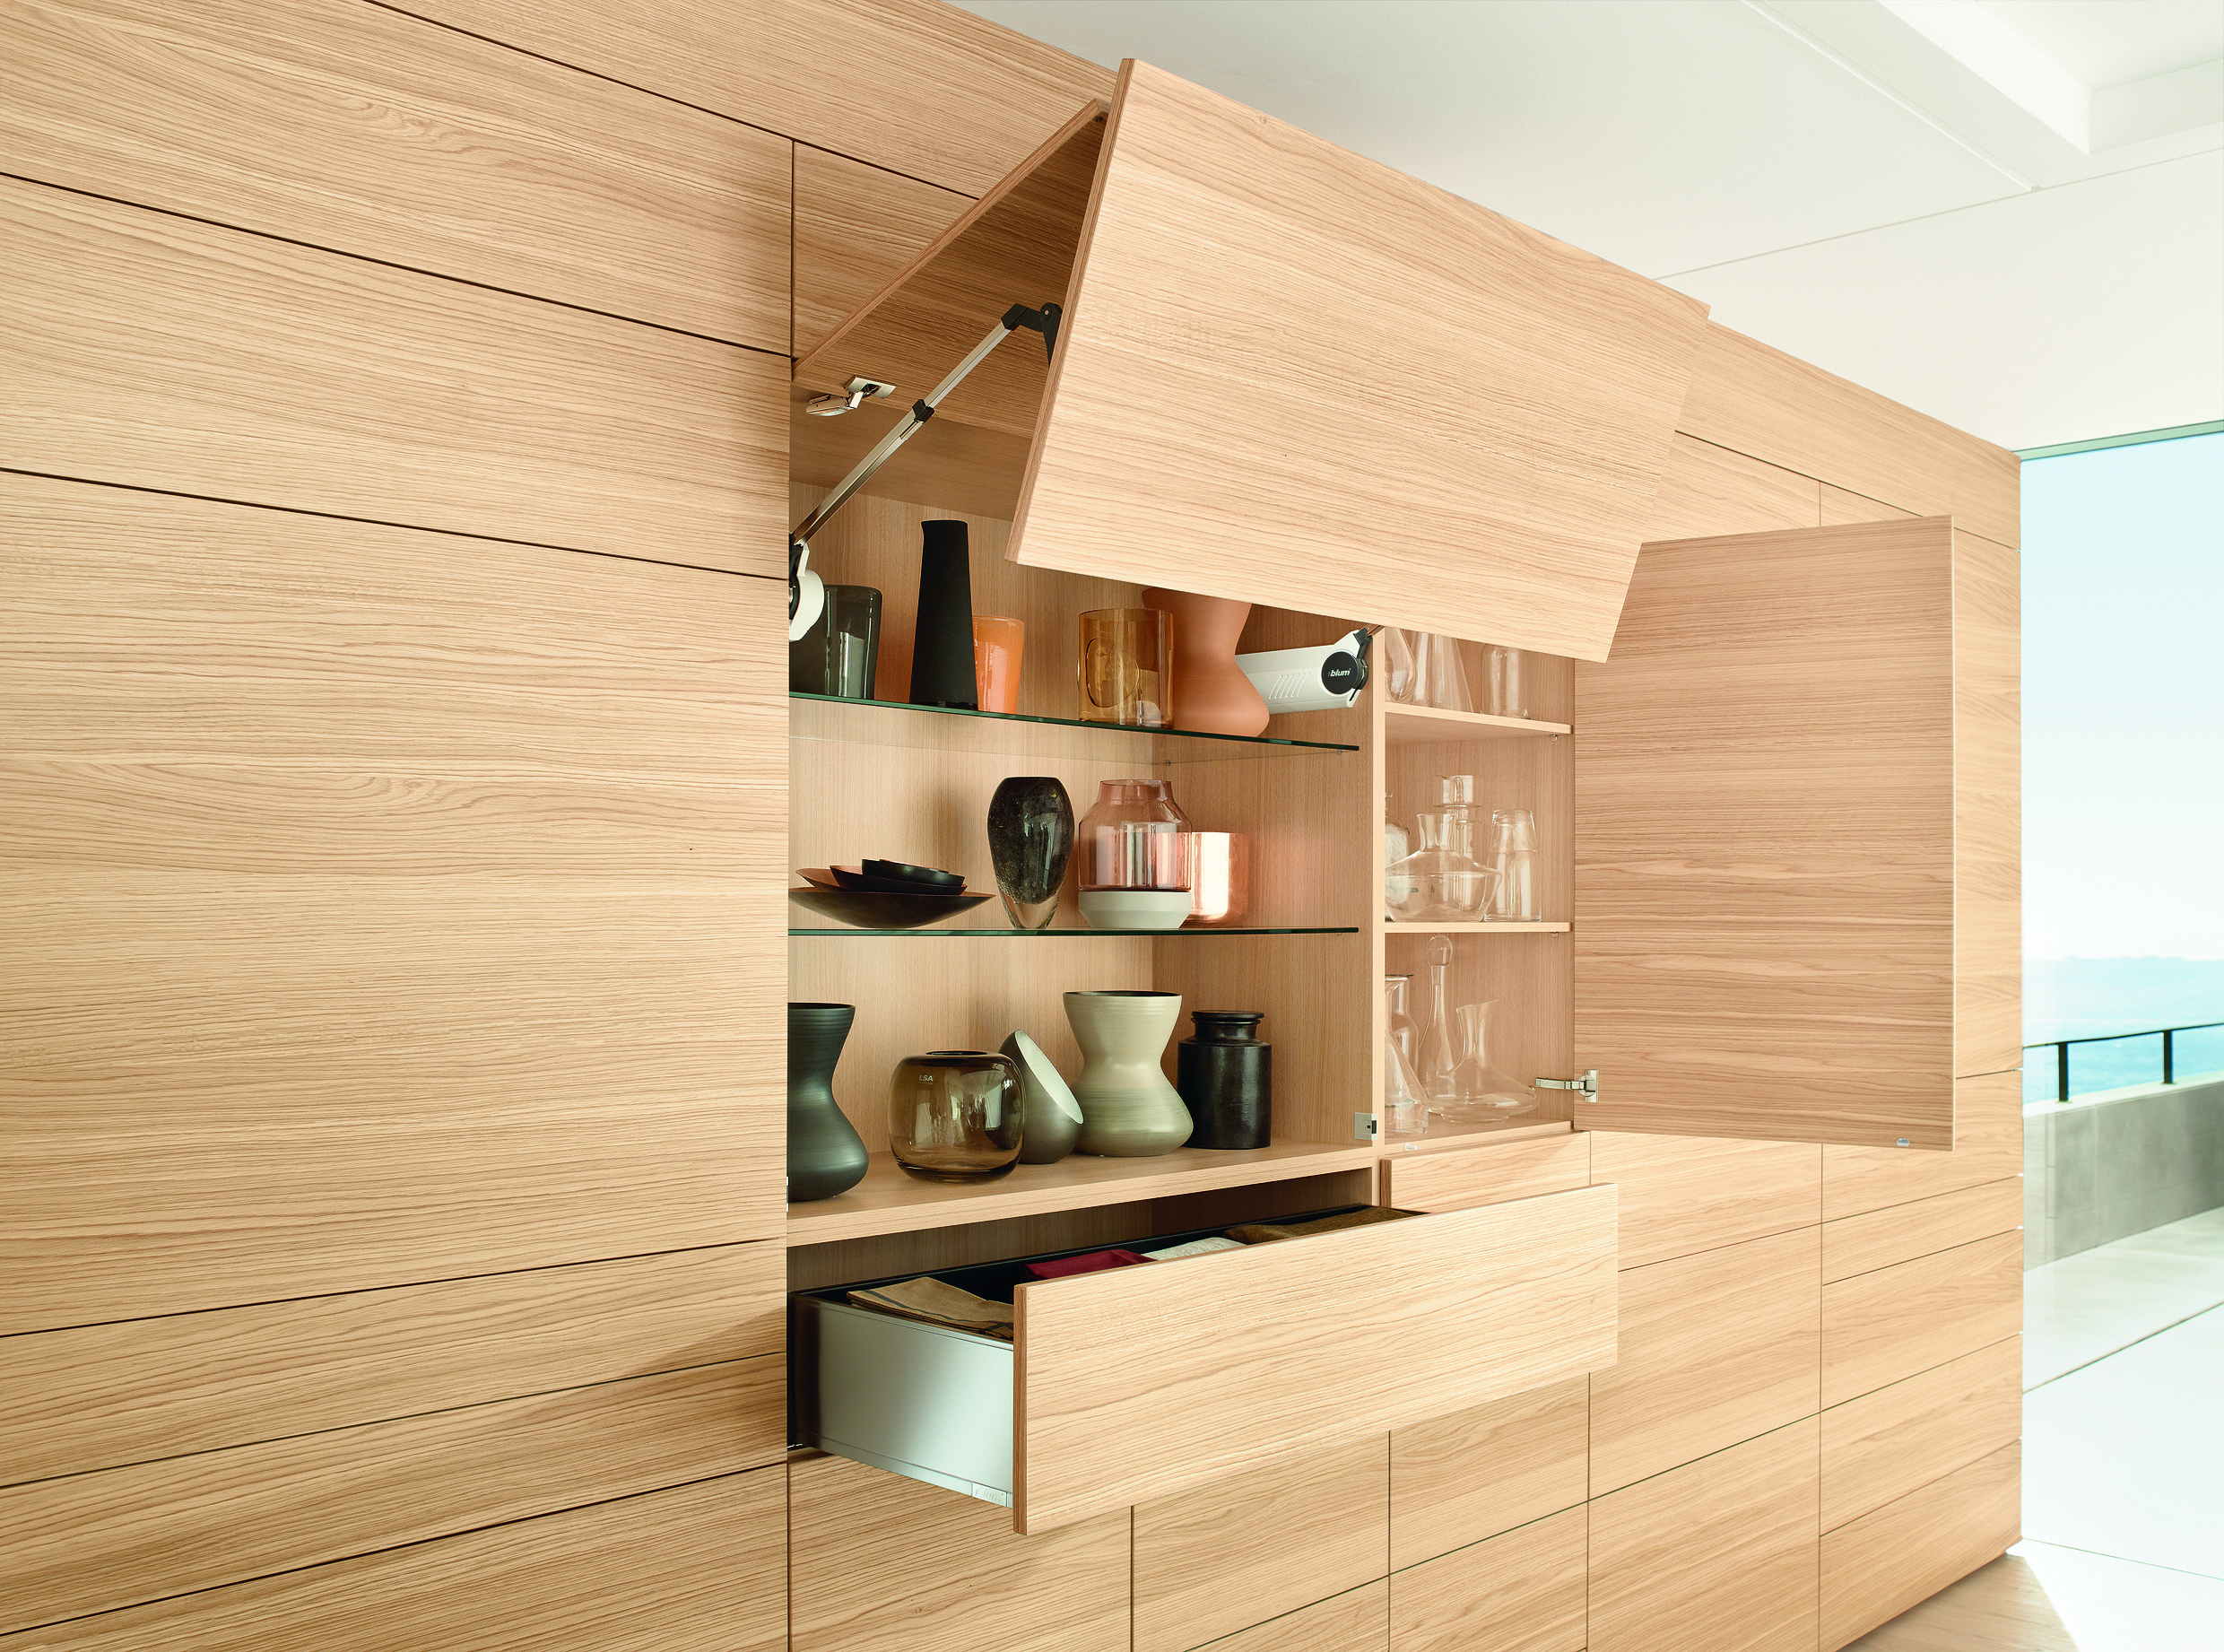 Merveilleux Thanks To Blum Fittings, Lift Systems, Doors And Pull Outs Can Be  Implemented In Various Designs To Suit The Application And Usersu0027 Needs.  Photo: Blum